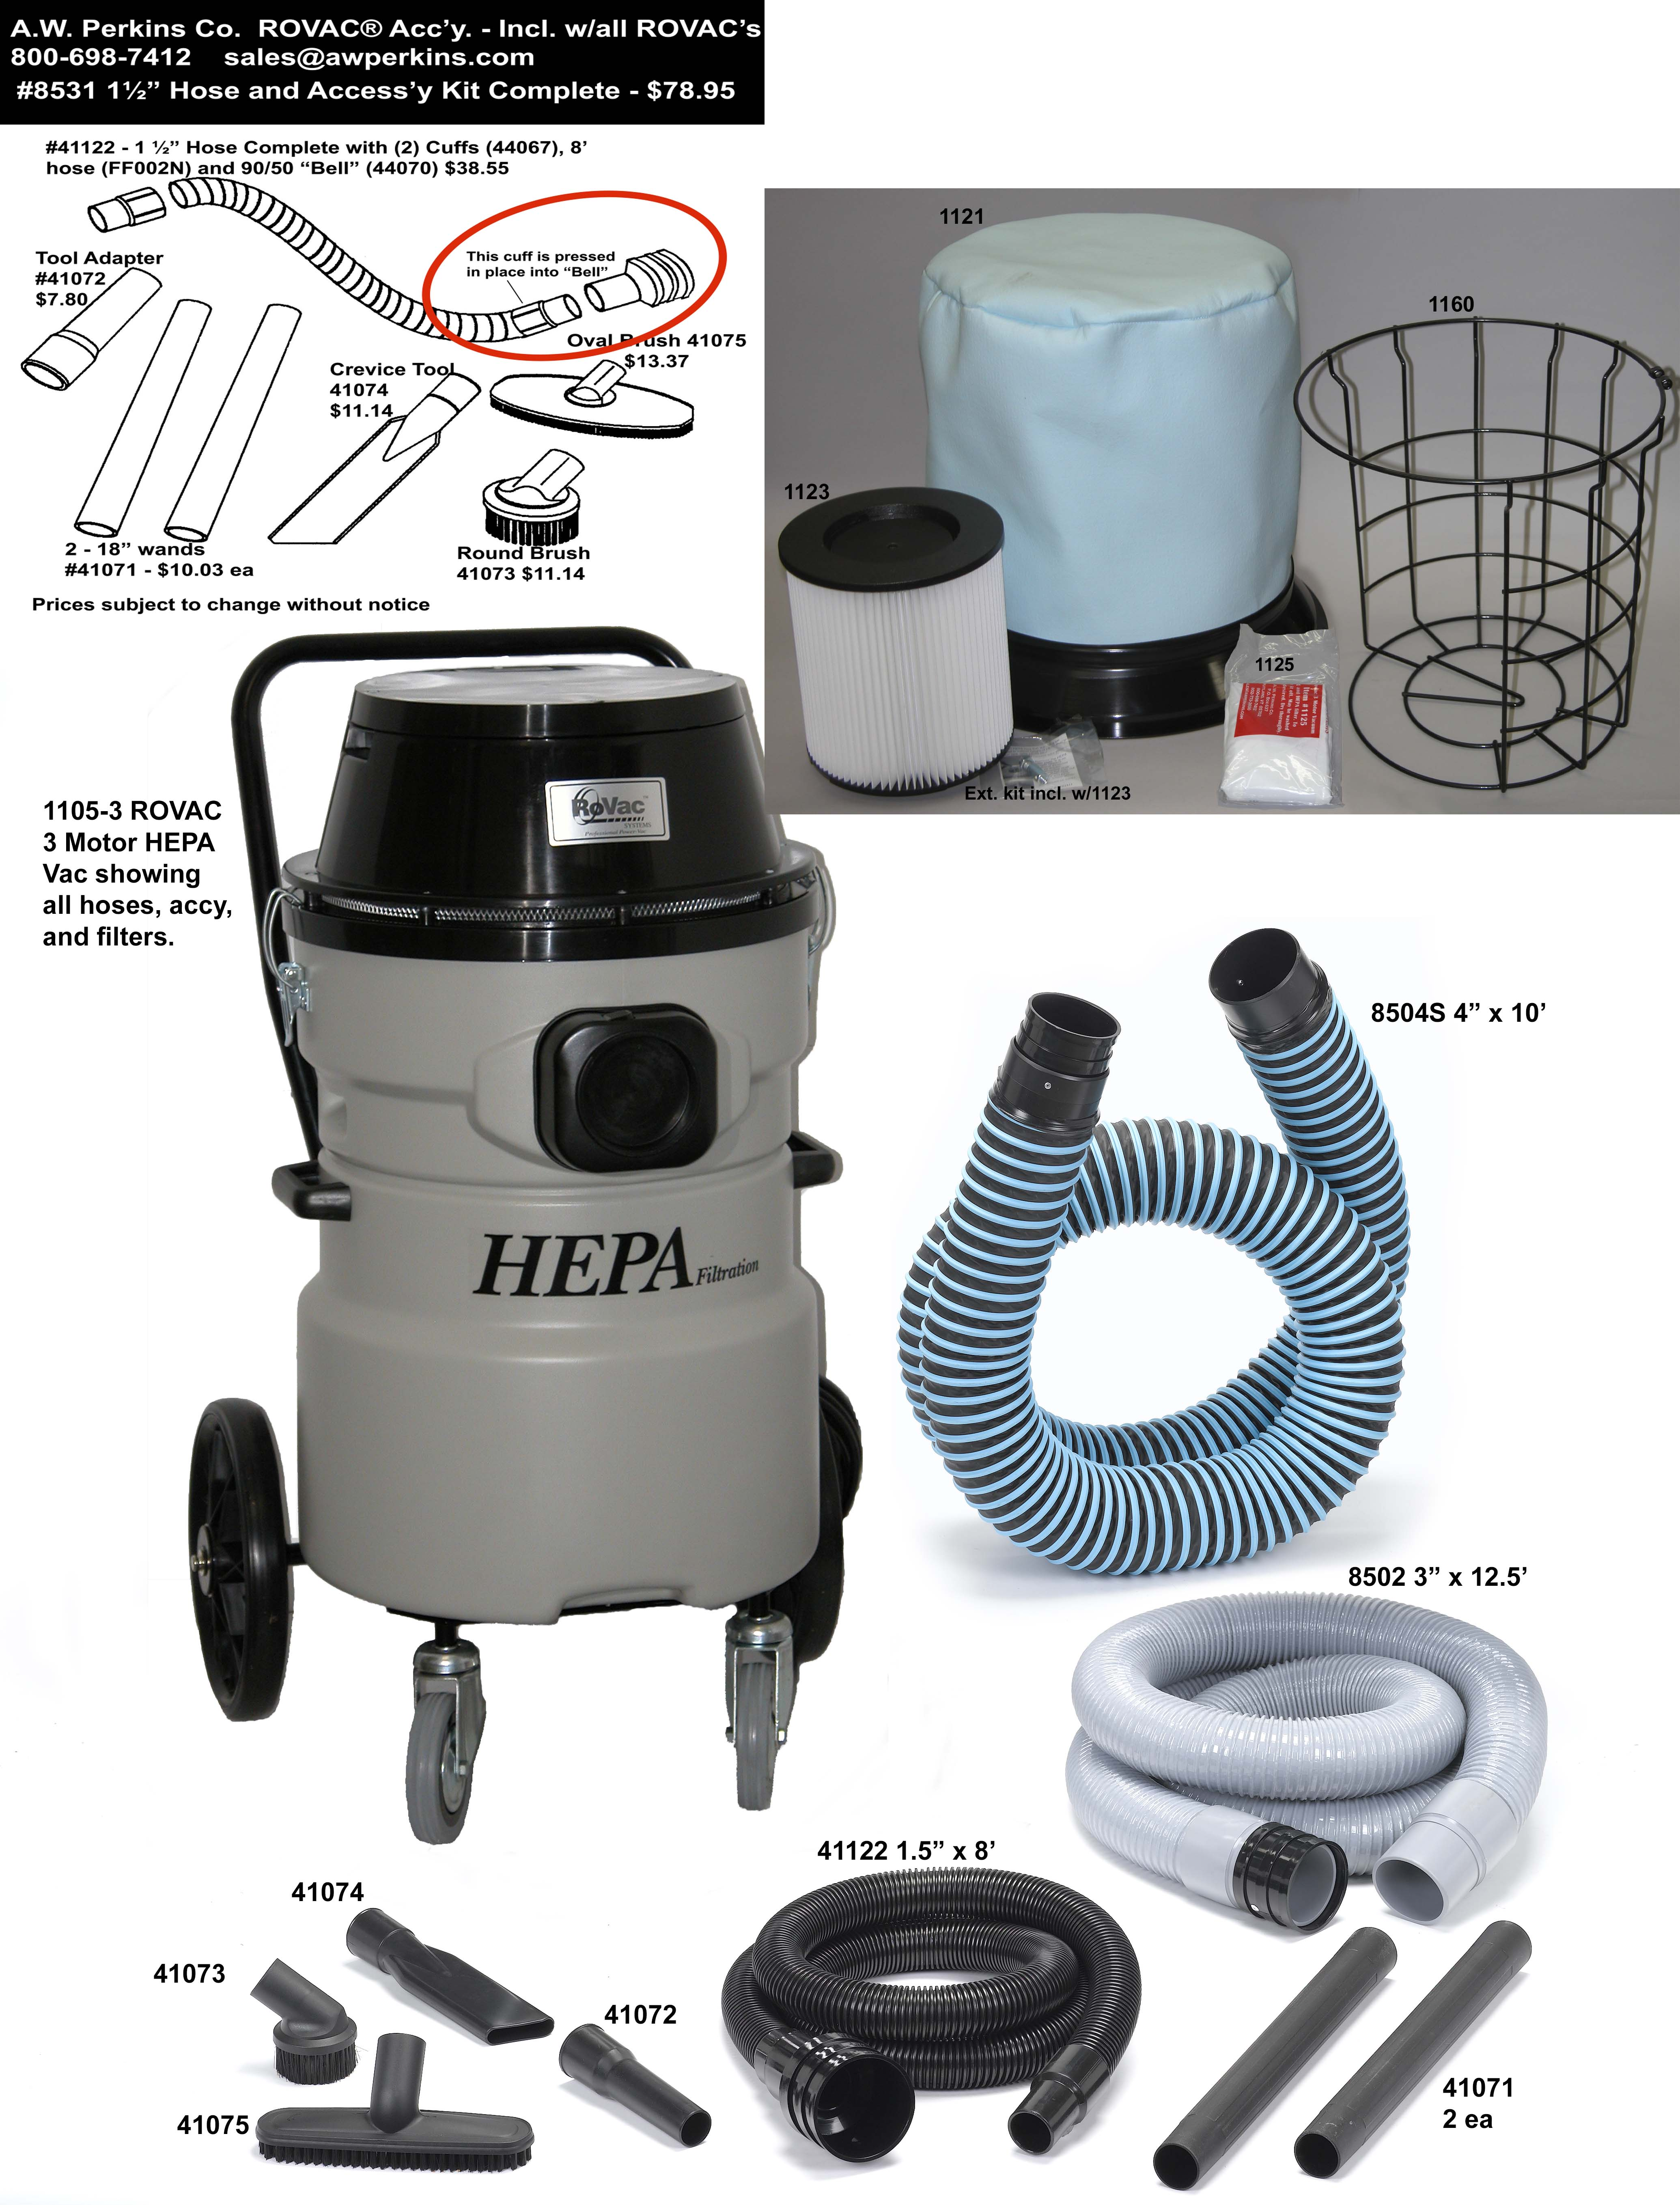 1105-3 ROVAC® Chimney Sweep's Vacuum - 3 Motor Fixed Trolley HEPA Vacuum